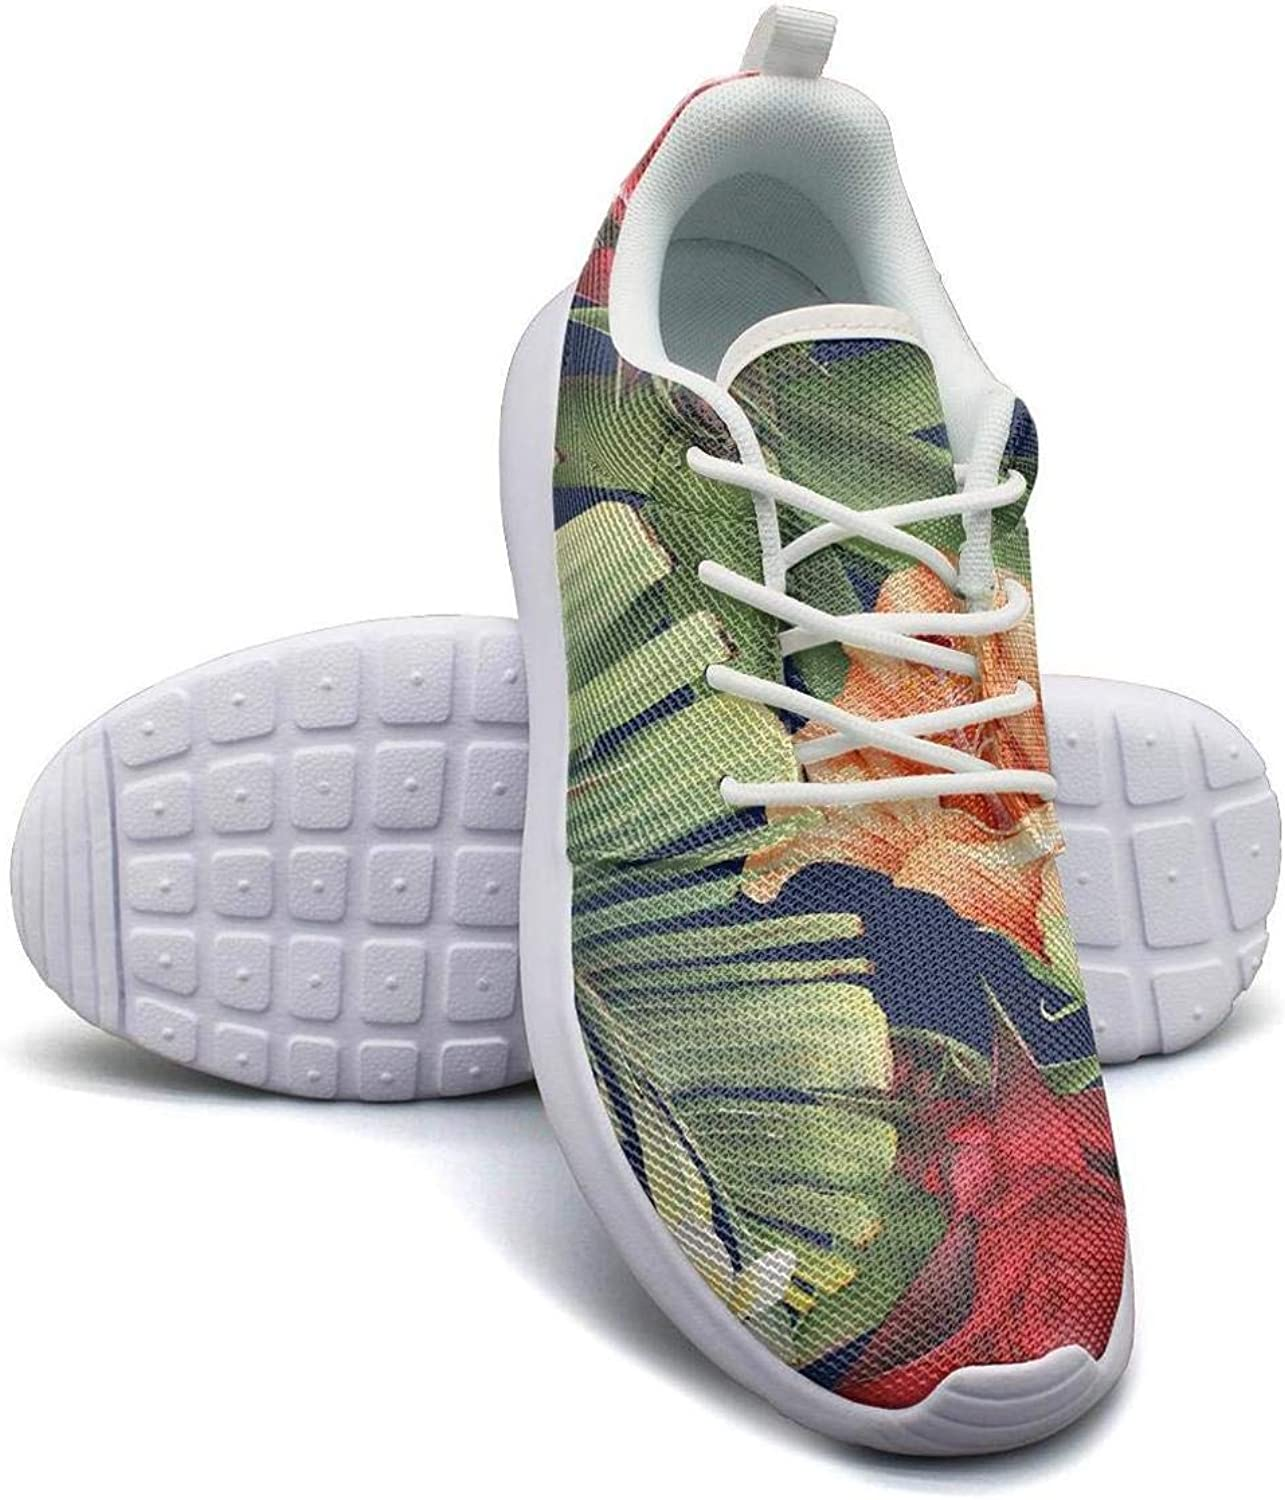 CHALi99 Fashion Lady Lightweight Mesh shoes Tropical Floral Strelitzia Loafers Outdoor Lace-Up